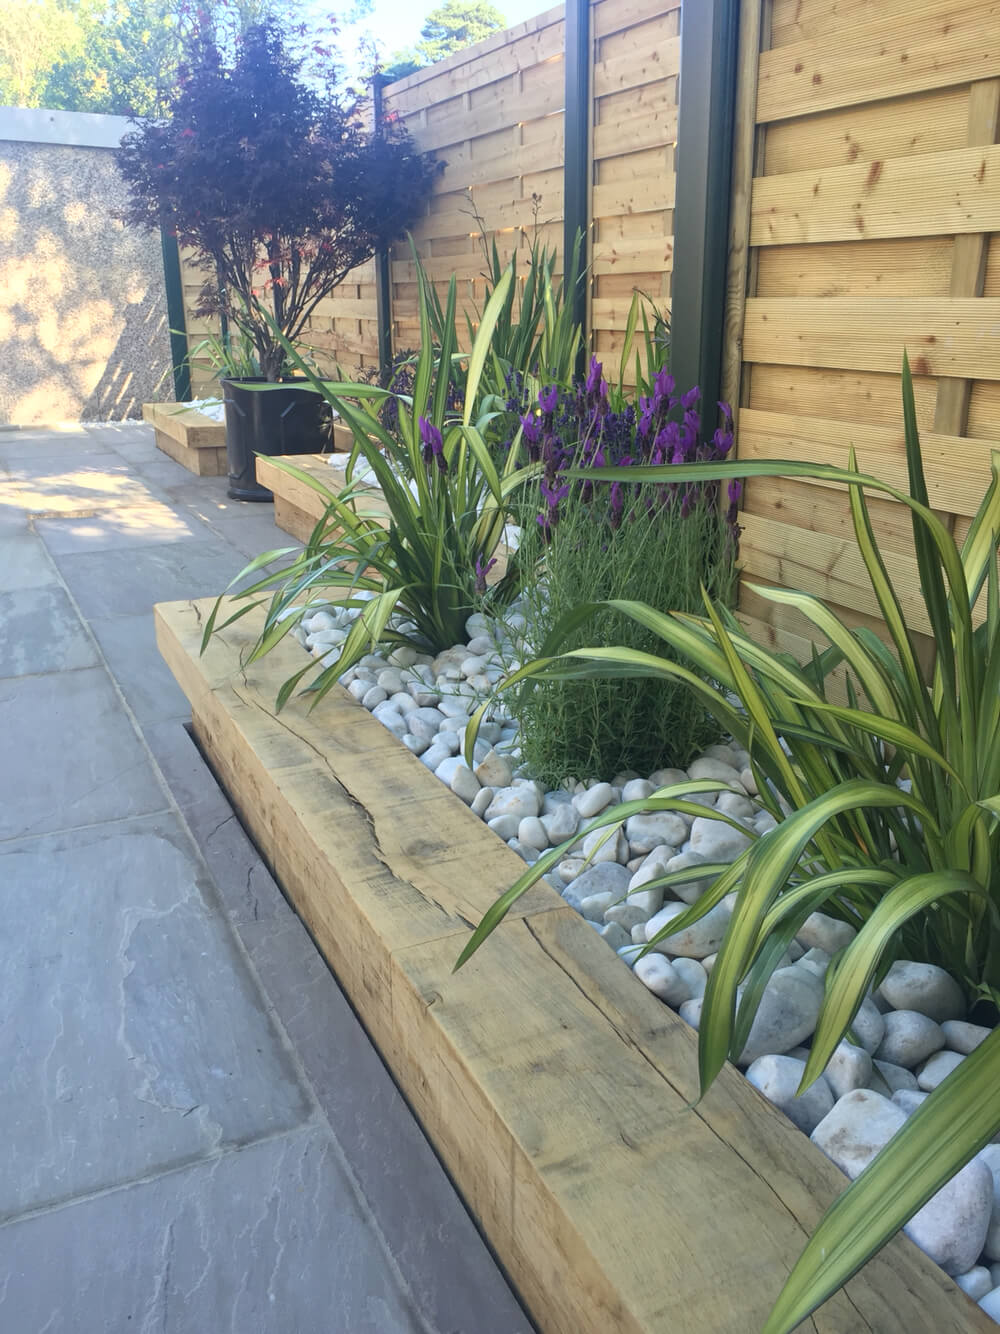 25+ Best Lawn-Edging Ideas and Designs for 2020 on Wooded Backyard Ideas id=80842